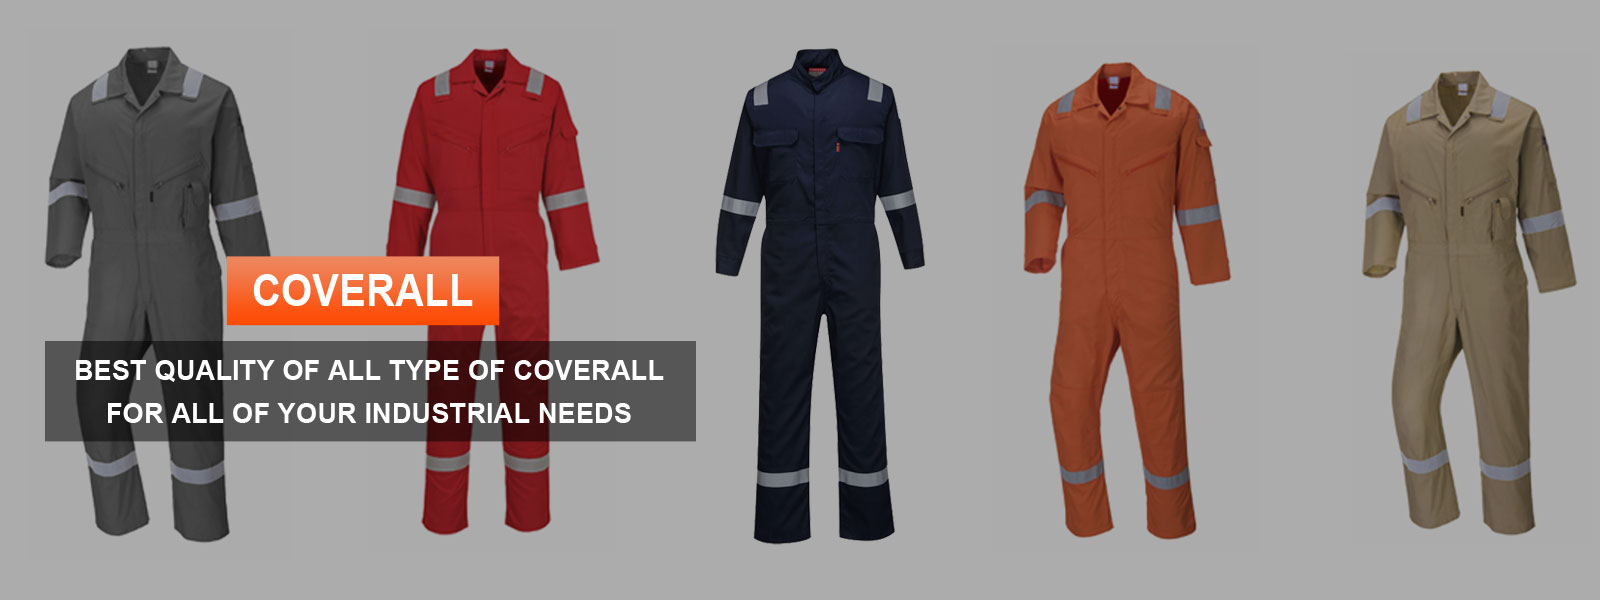 Coverall Manufacturers in Germany